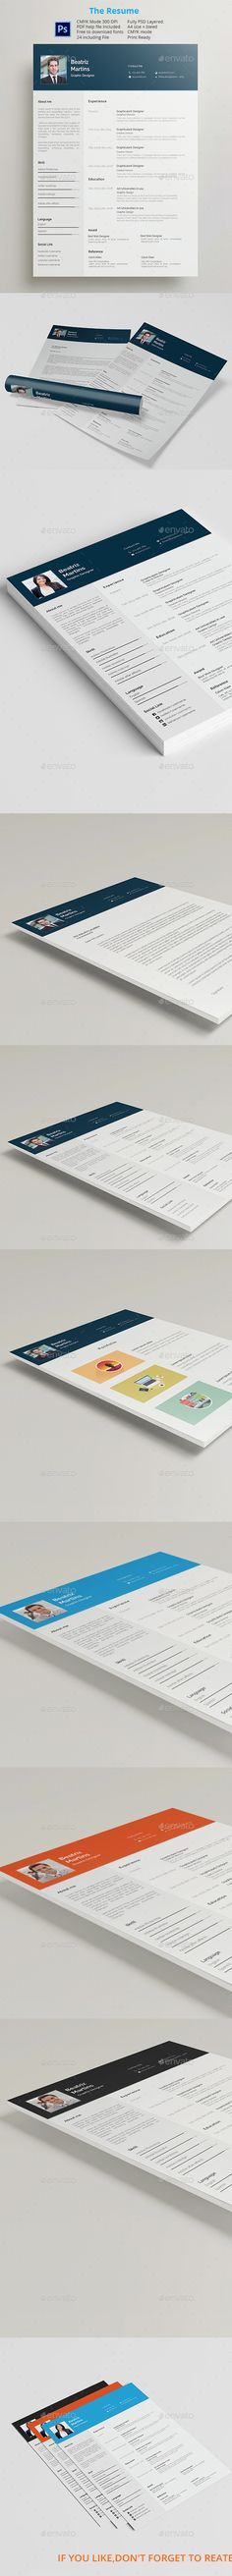 #Resumes #Templates - Resumes #Stationery Download here: https://graphicriver.net/item/resumes-templates/11147529?ref=artgallery8